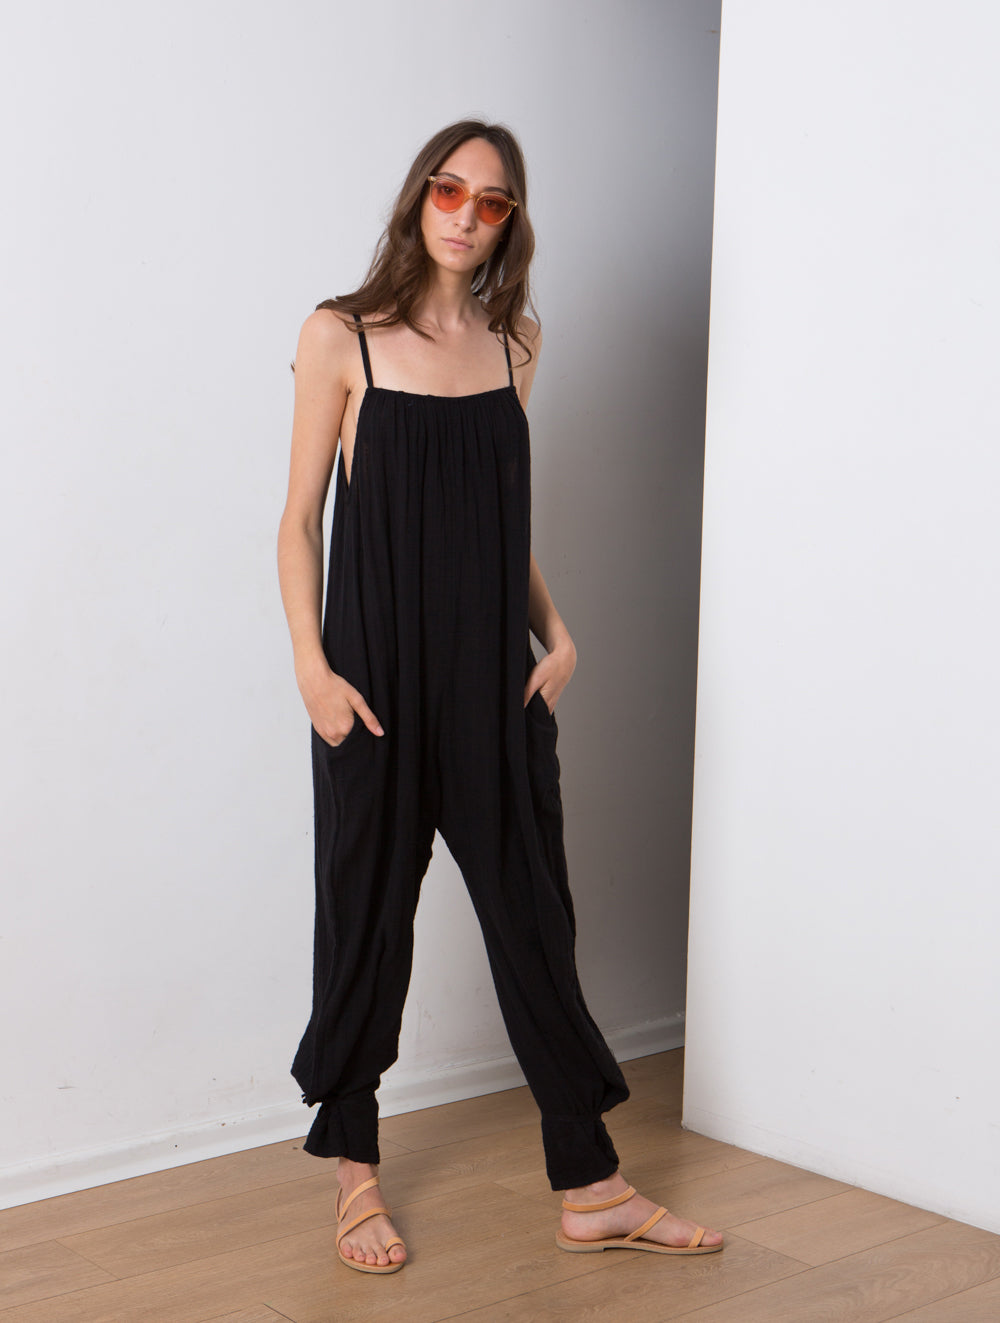 women's sleeveless onesie, Cotton overalls lovely relaxed casual fit. Black.